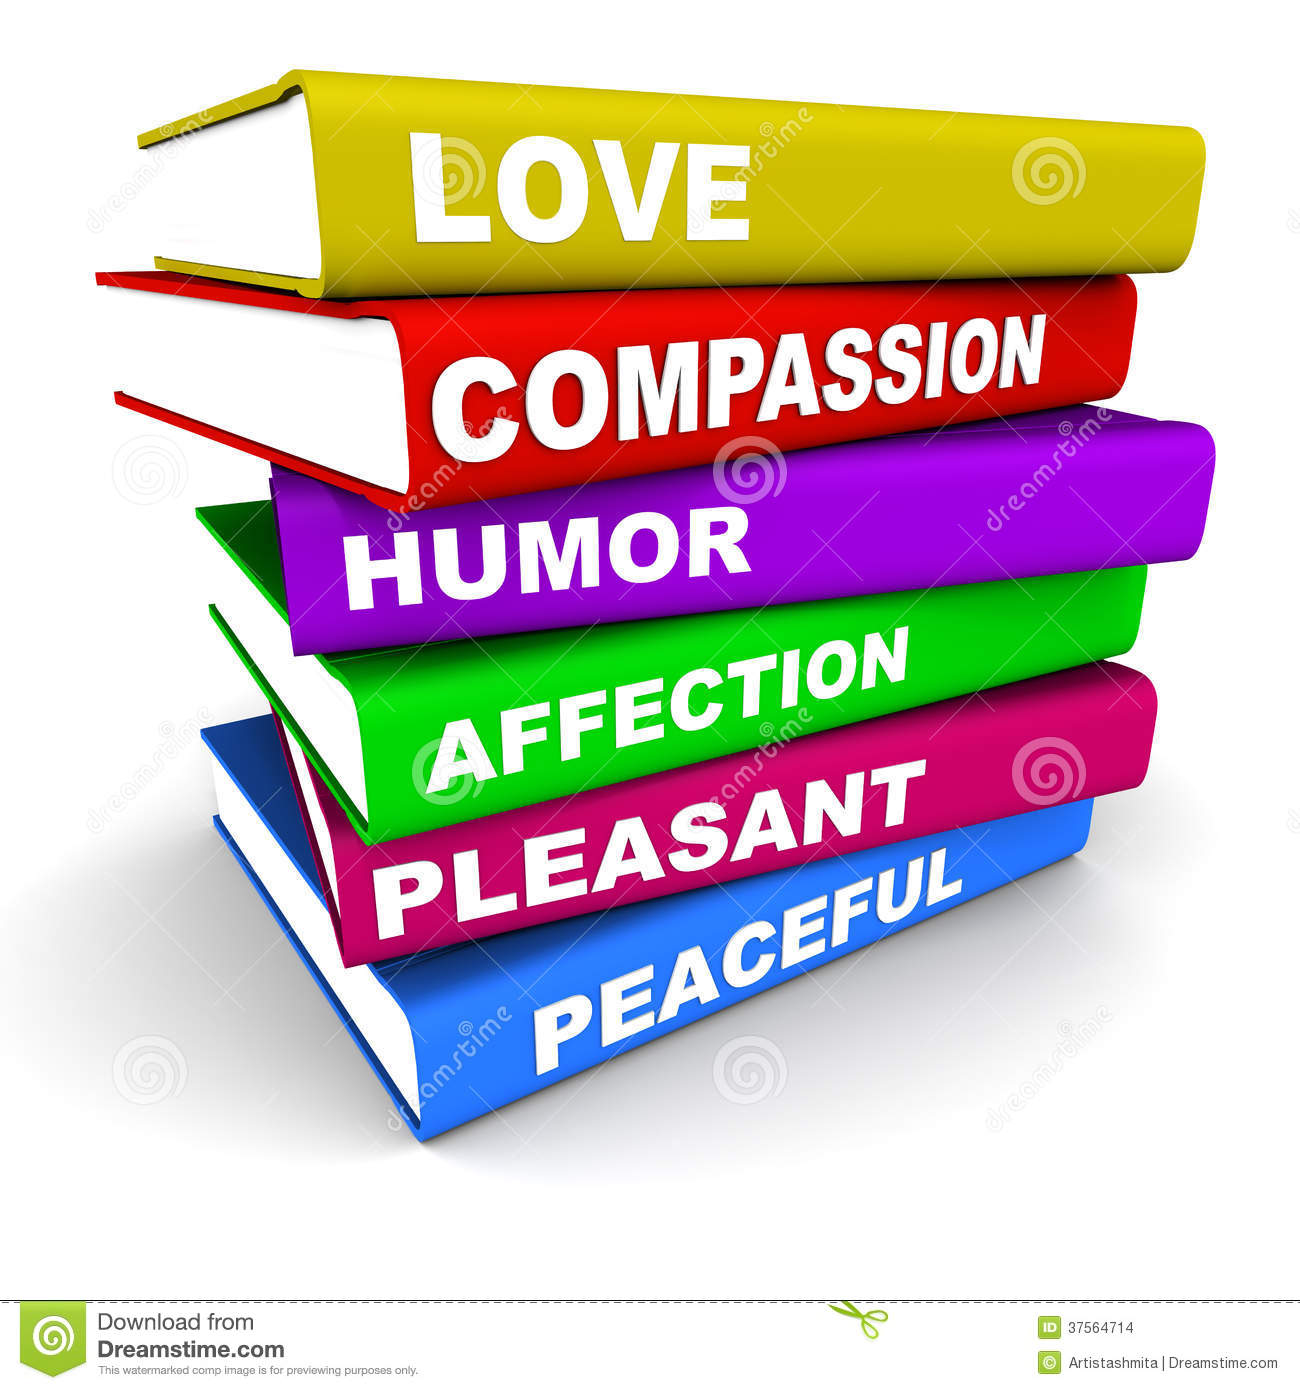 personal qualities stock images image 37564714 personal qualities